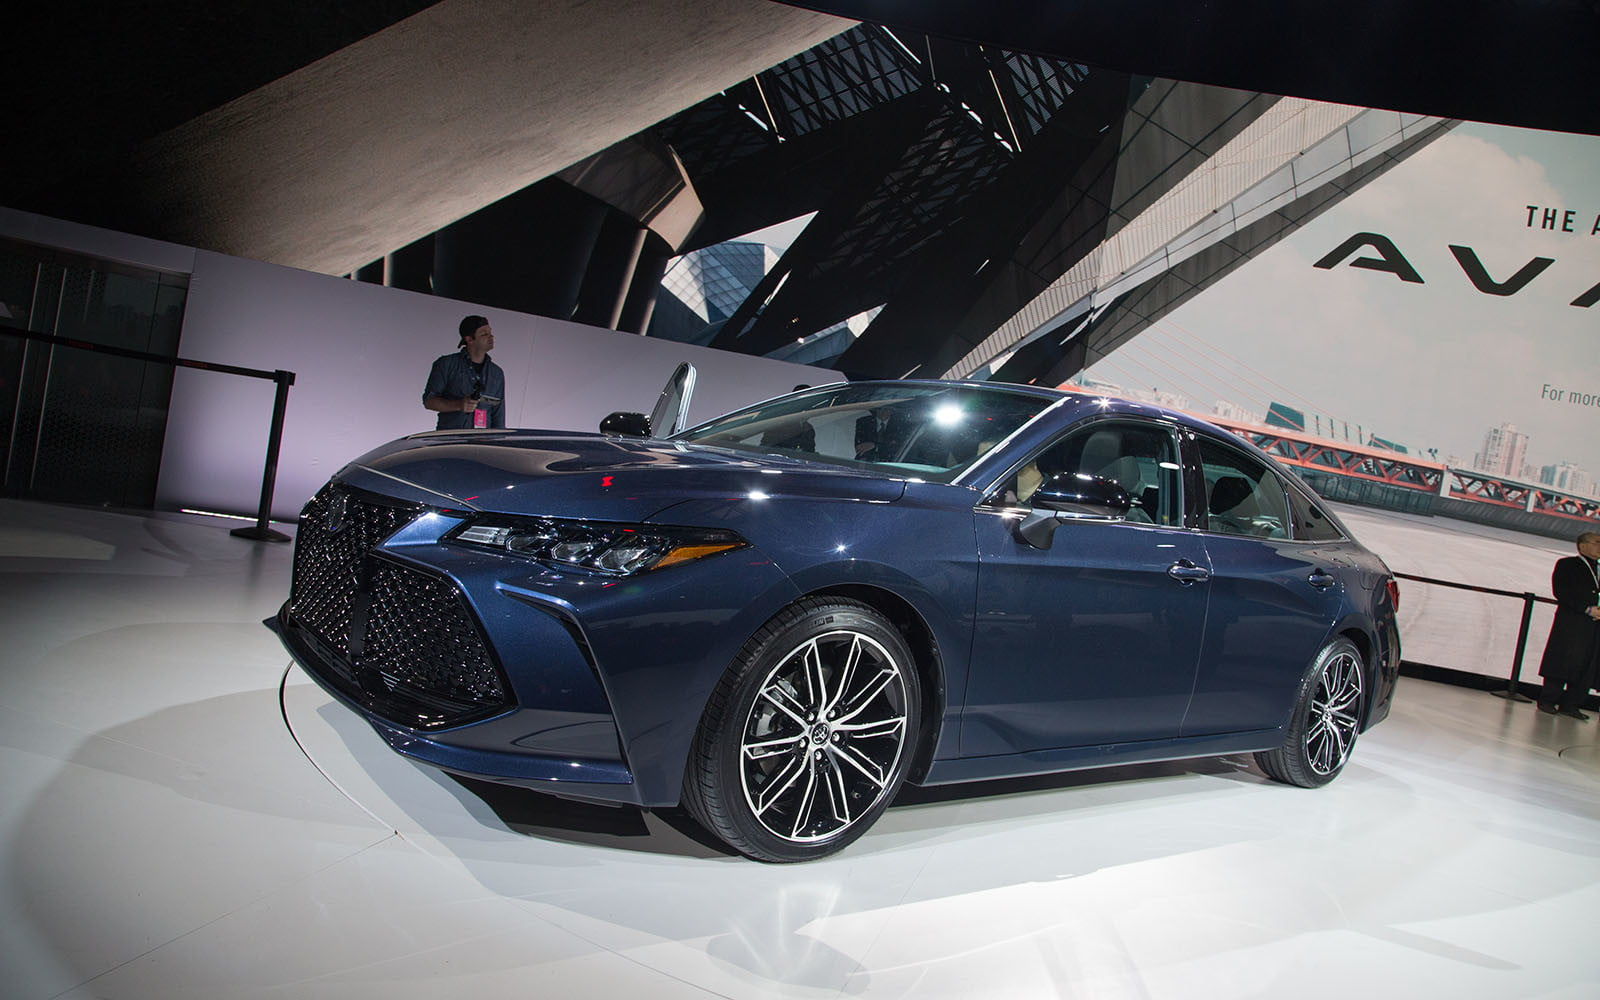 2019 Toyota Avalon Ditches Humdrum Design For Something Dramatic Digital Trends